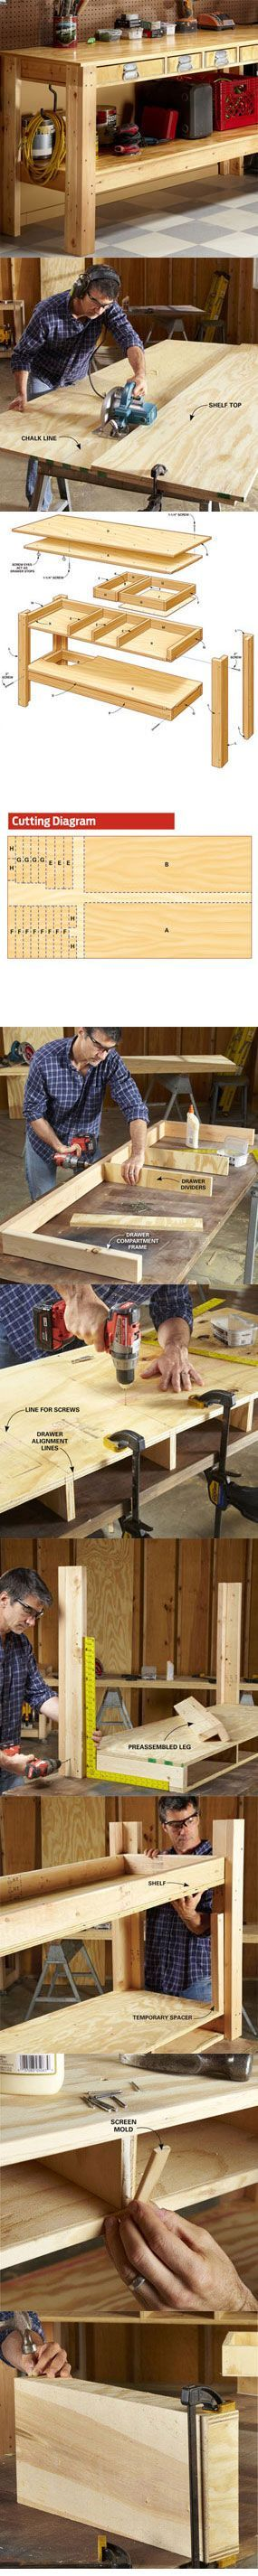 Use this simple workbench plan to build a sturdy, tough workbench that'll last for decades. It has drawers and shelves for tool storage. It's inexpensive. And even a novice can build it in one day. Get your simple workbench plans at http://www.familyhandyman.com/DIY-Projects/Woodworking/Workbenches/simple-workbench-plans: